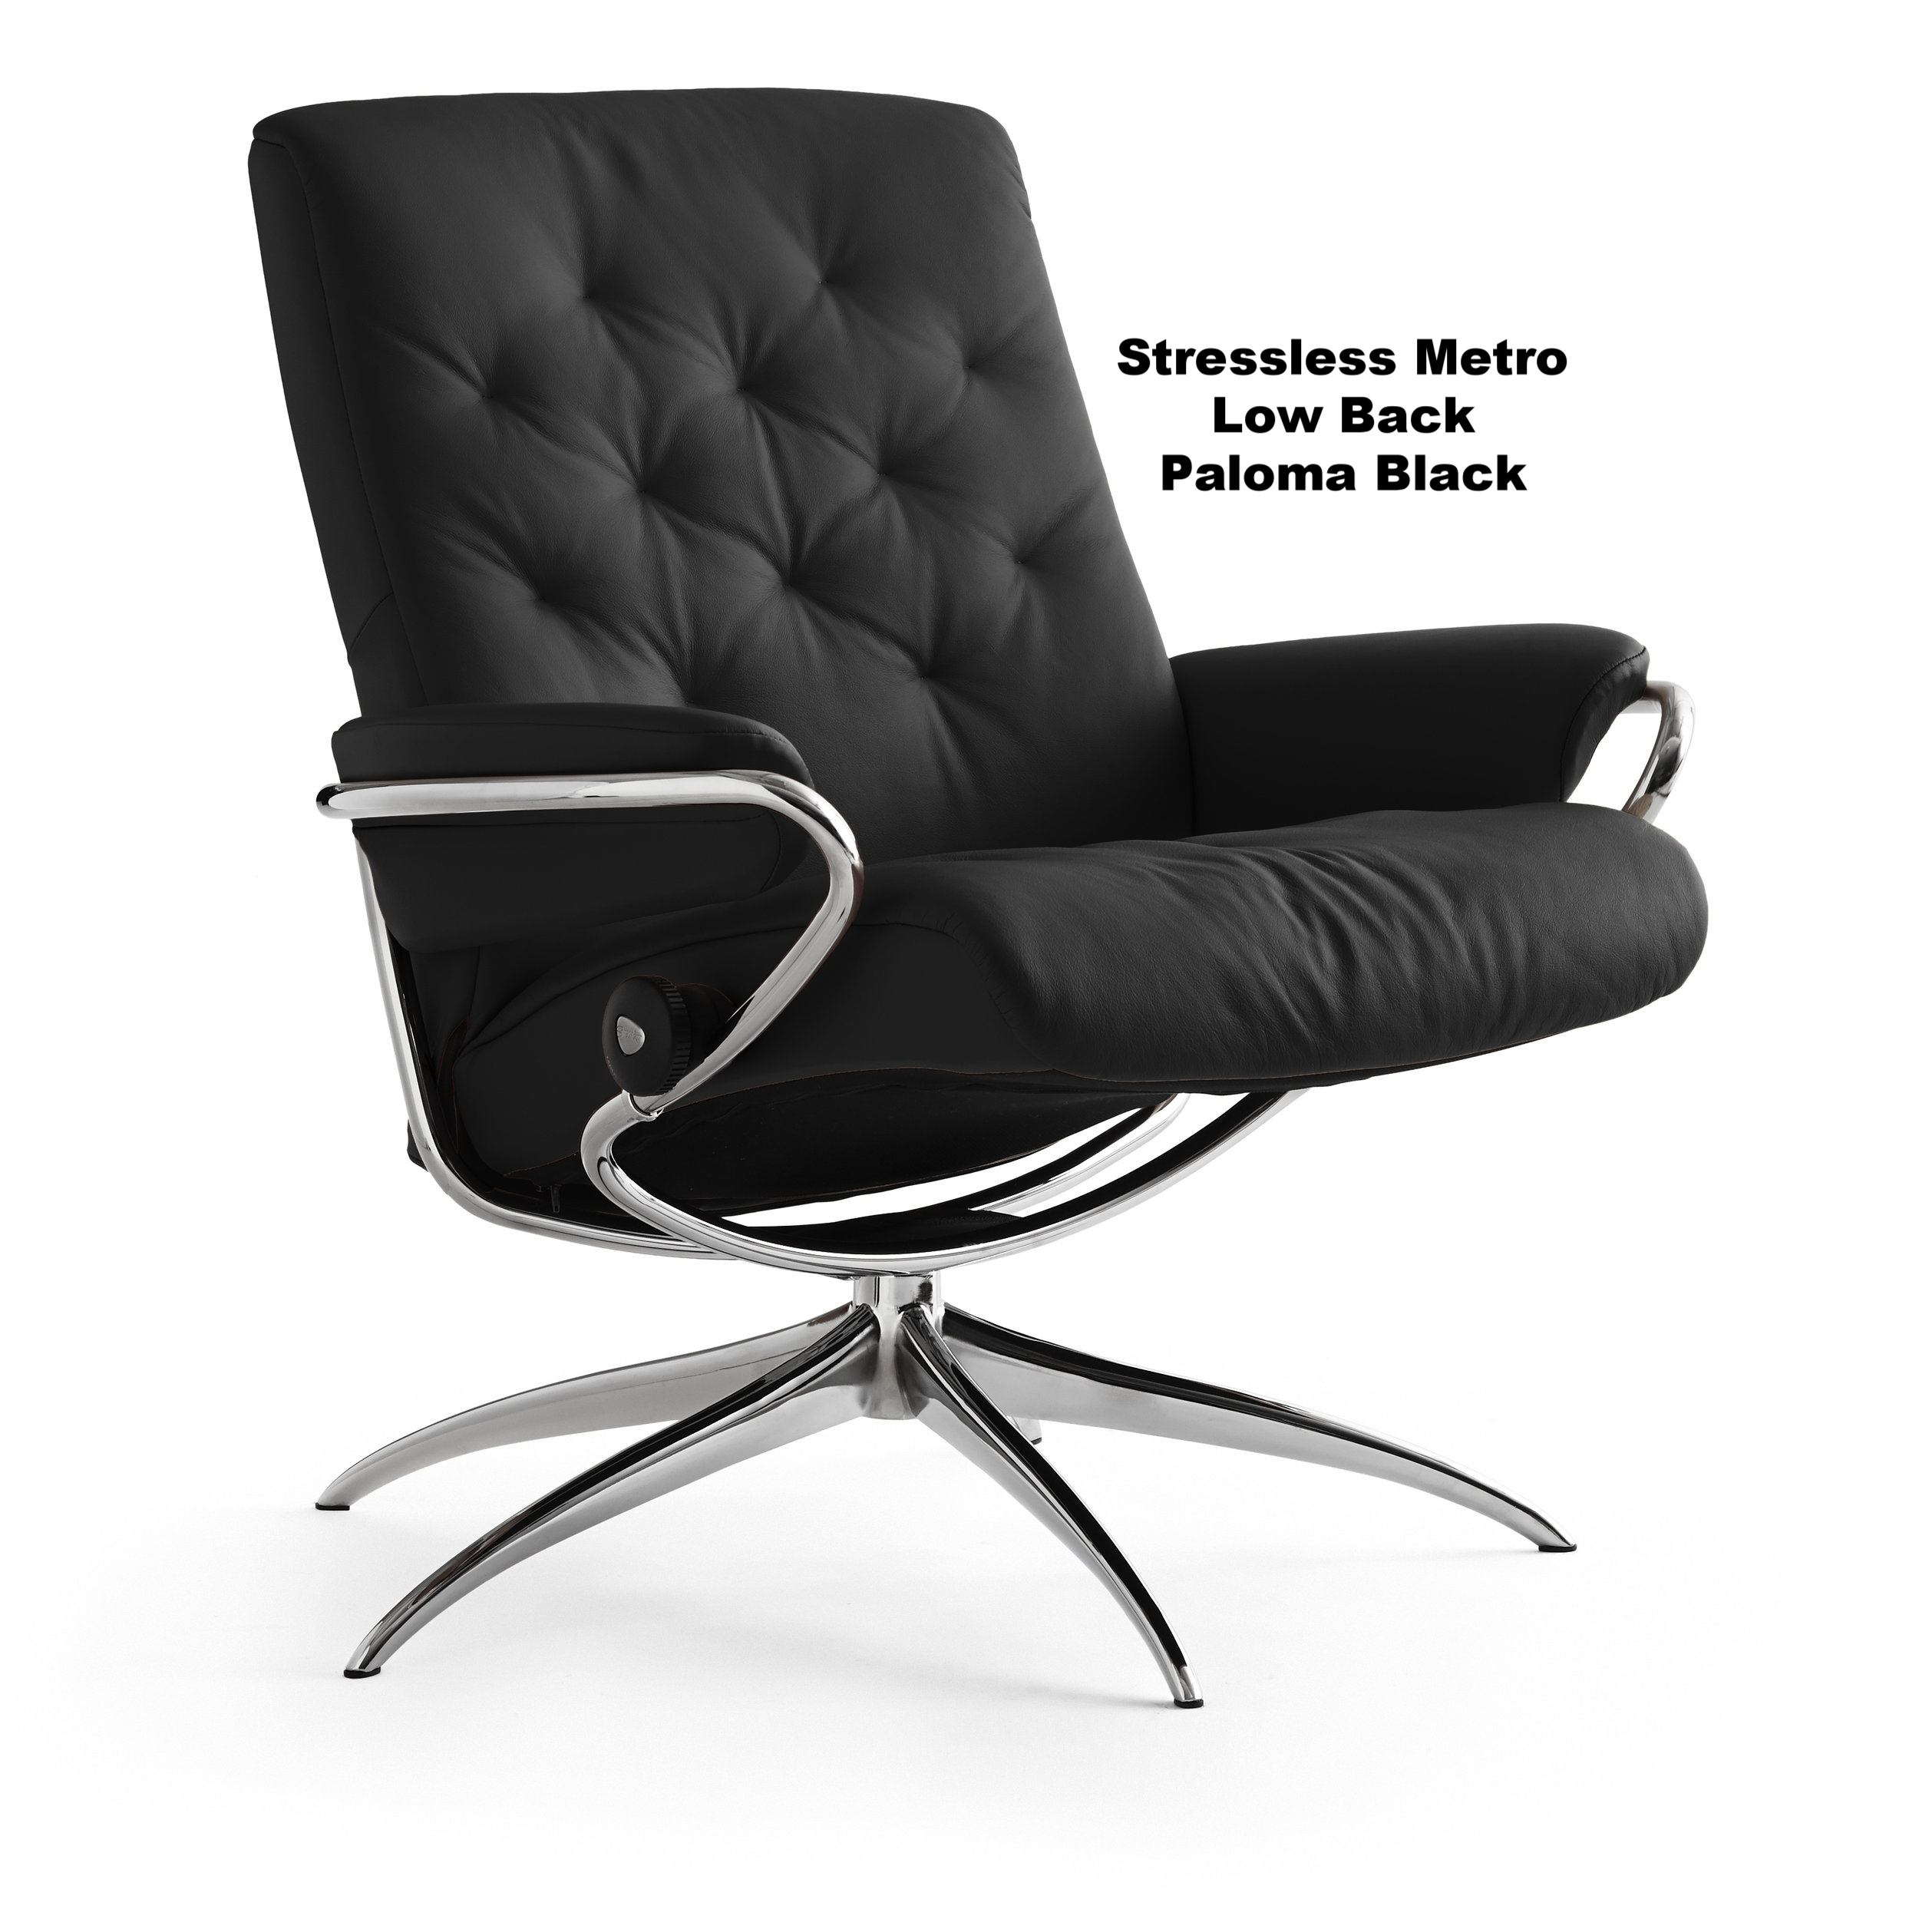 Stressless Sessel Metro High Back Stressless Metro Low Back